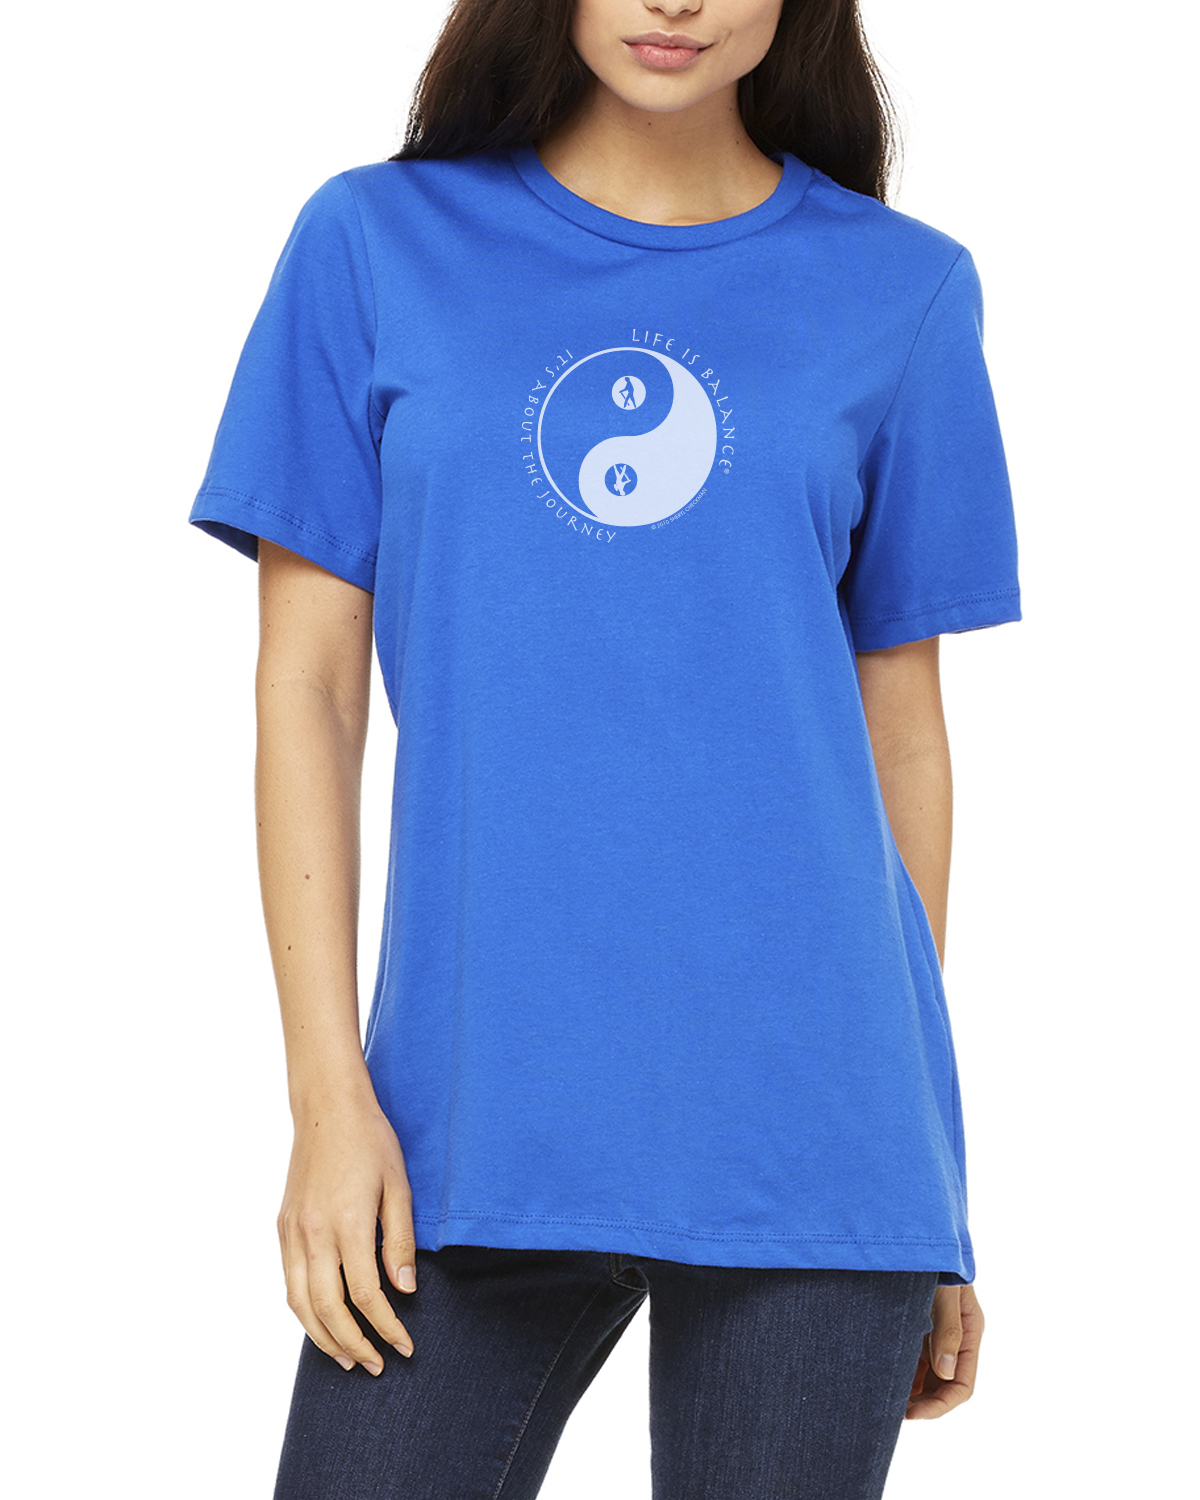 Women's short-sleeve hiking t-shirt (royal)